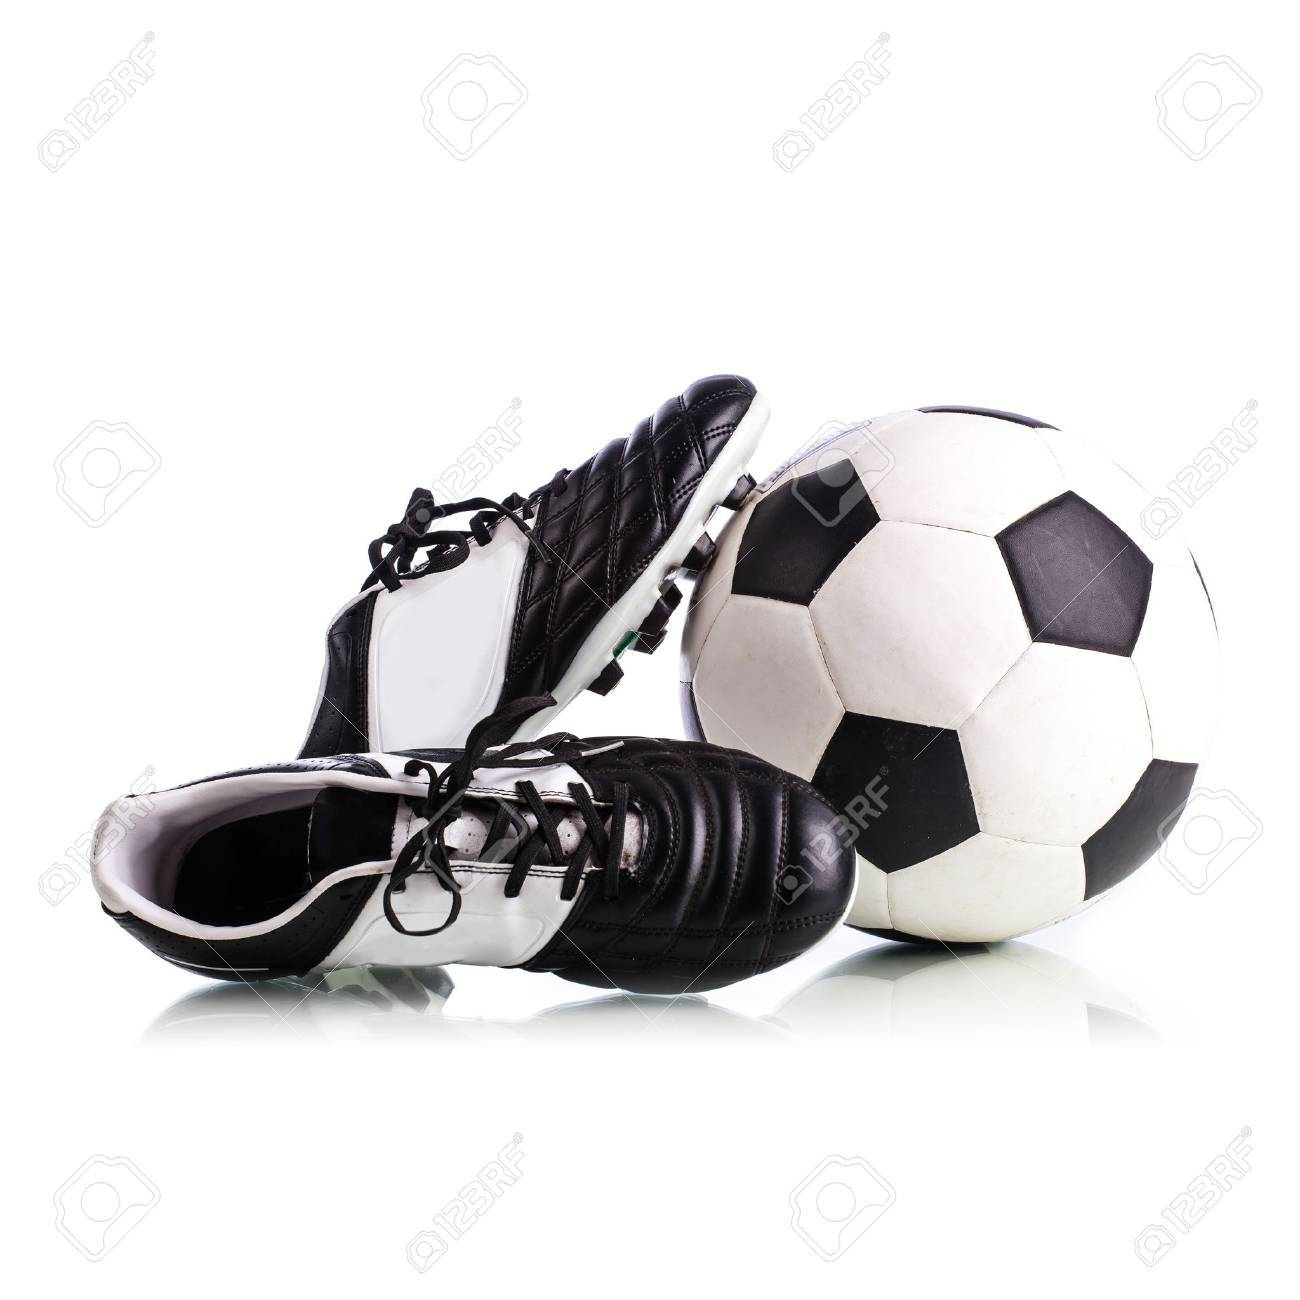 Soccer Shoes On White Background Stock